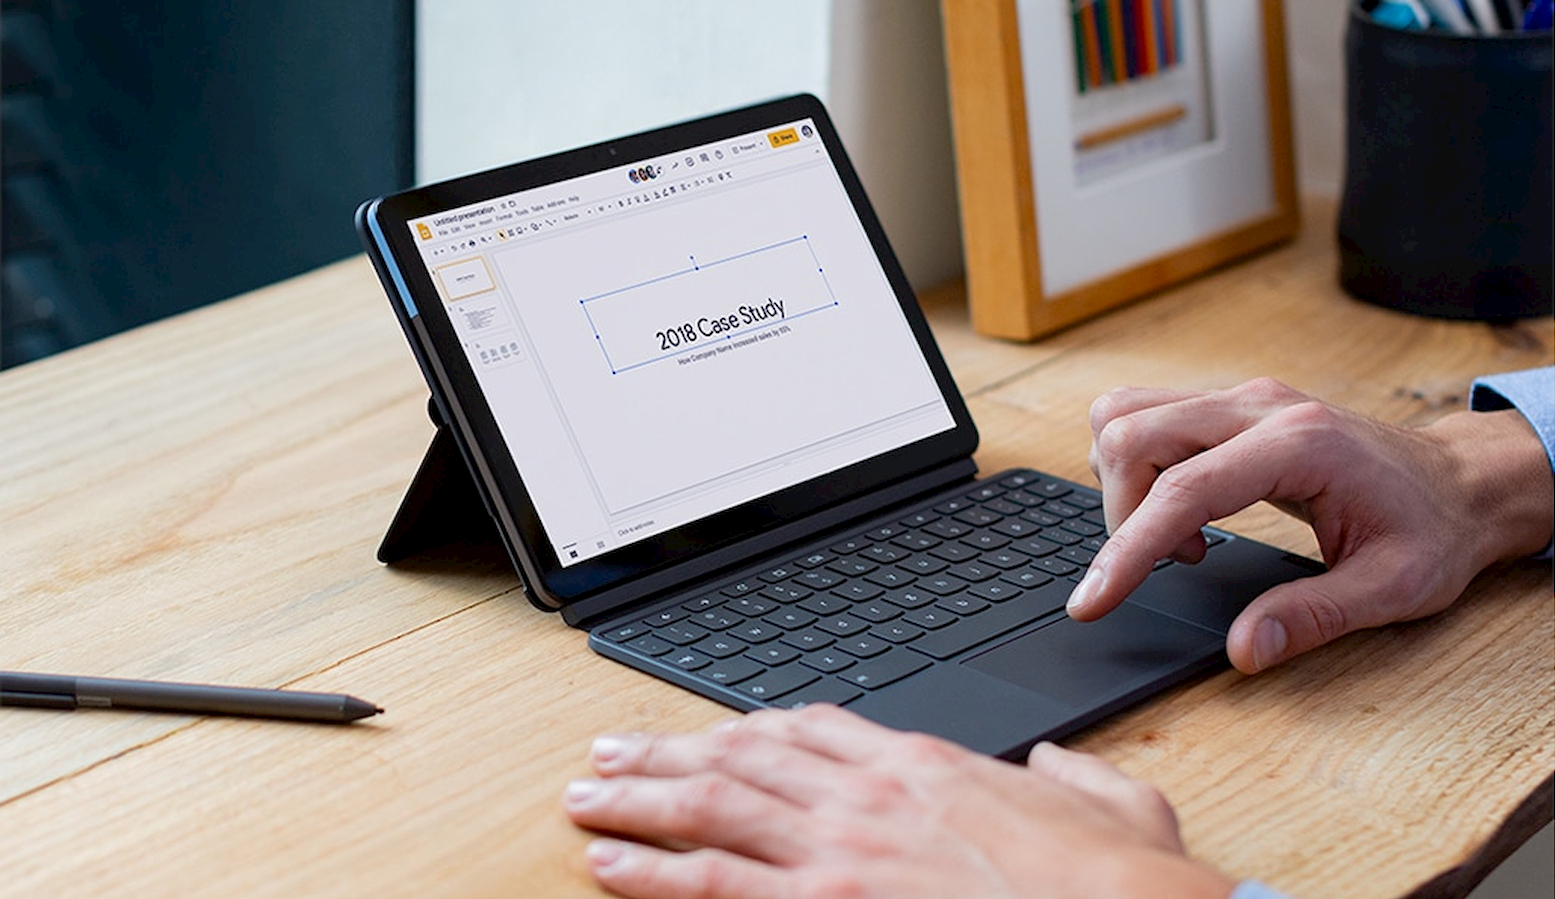 For $38, you can buy the USI stylus designed for the Lenovo Chromebook Duet